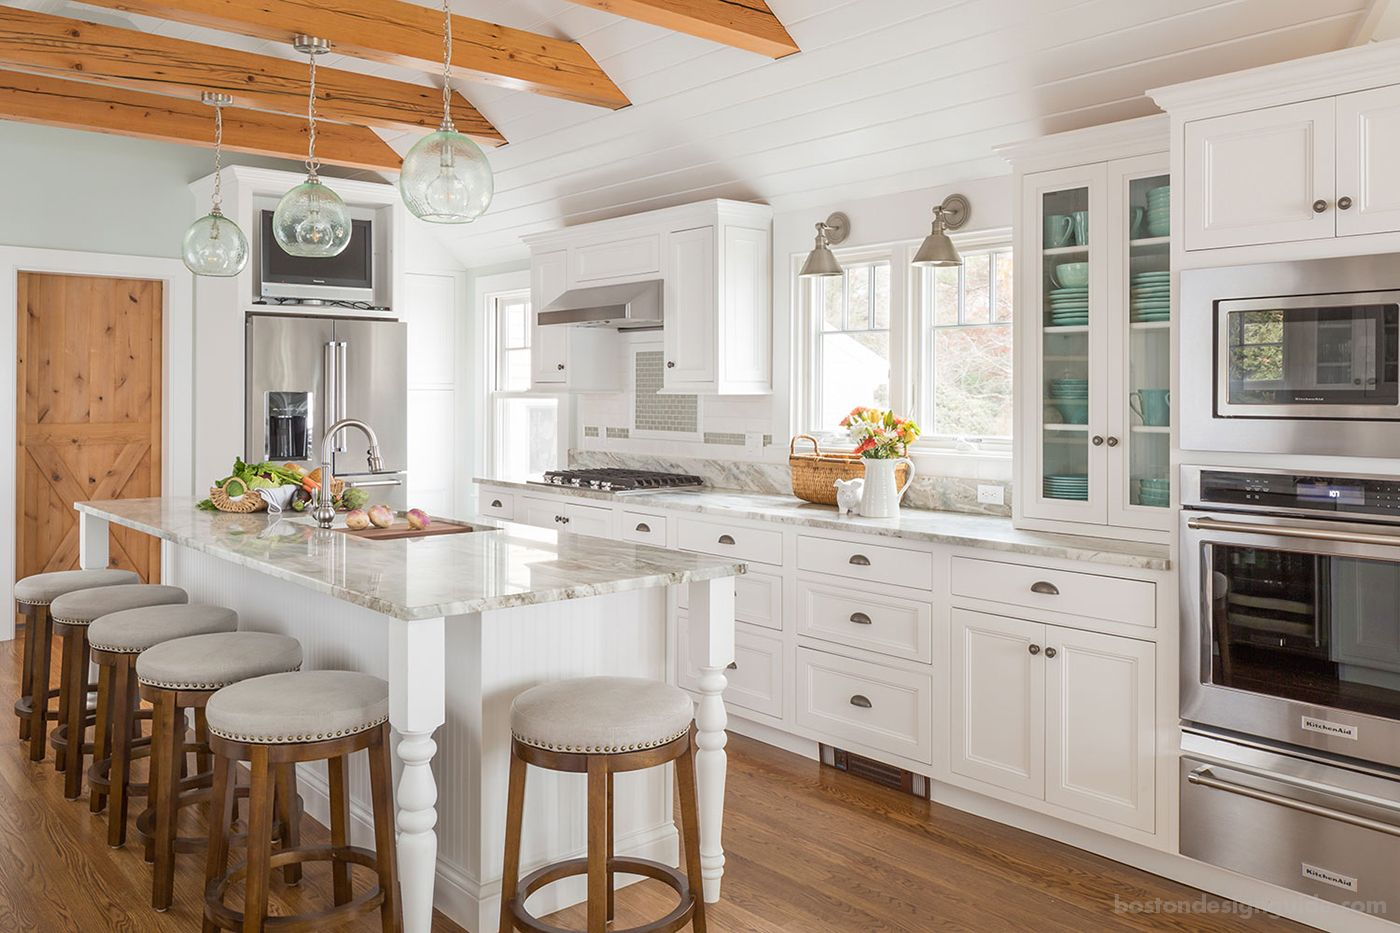 A Cape Cod Cottage Style Kitchen S New Look Boston Design Guide Cottage Style Kitchen Cape Cod Kitchen Remodel Kitchen Inspirations